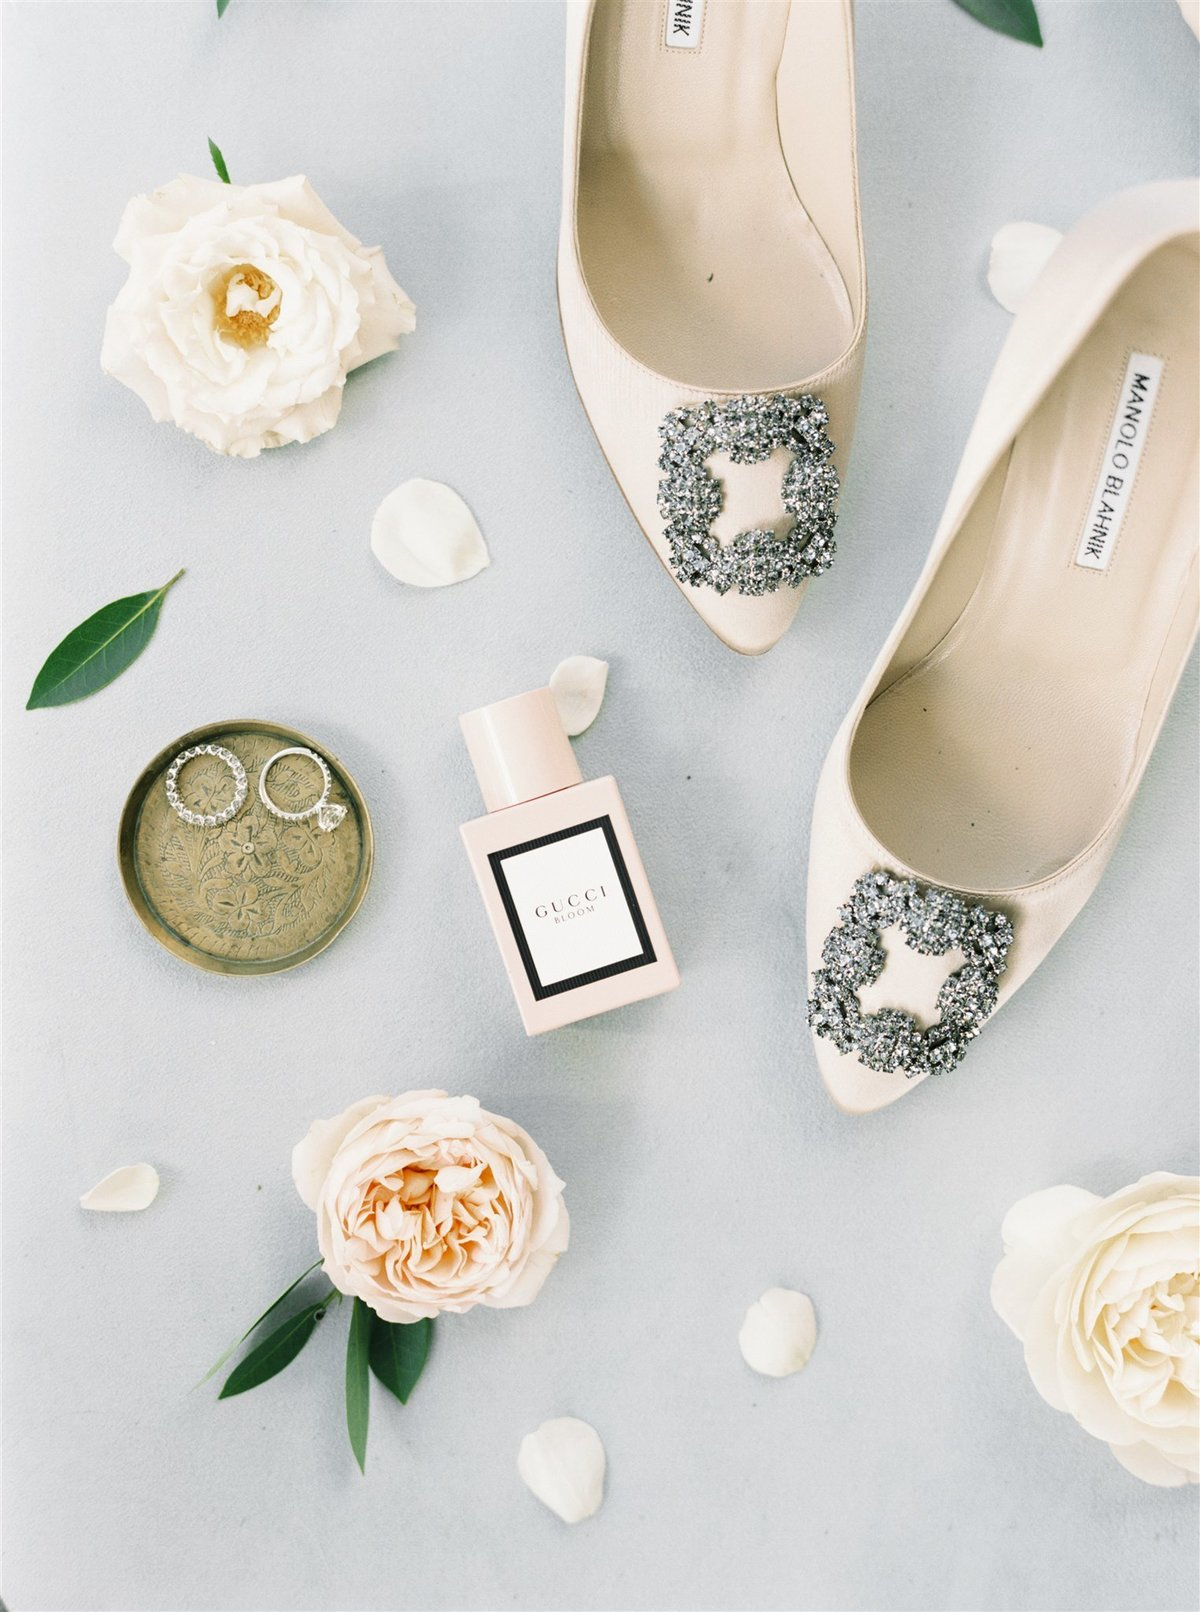 Manolo Blahnik shoes, 3 carat diamond engagement ring and Gucci Bloom for a Cape Cod Wedding by luxury Cape Cod wedding planner and designer Always Yours Events